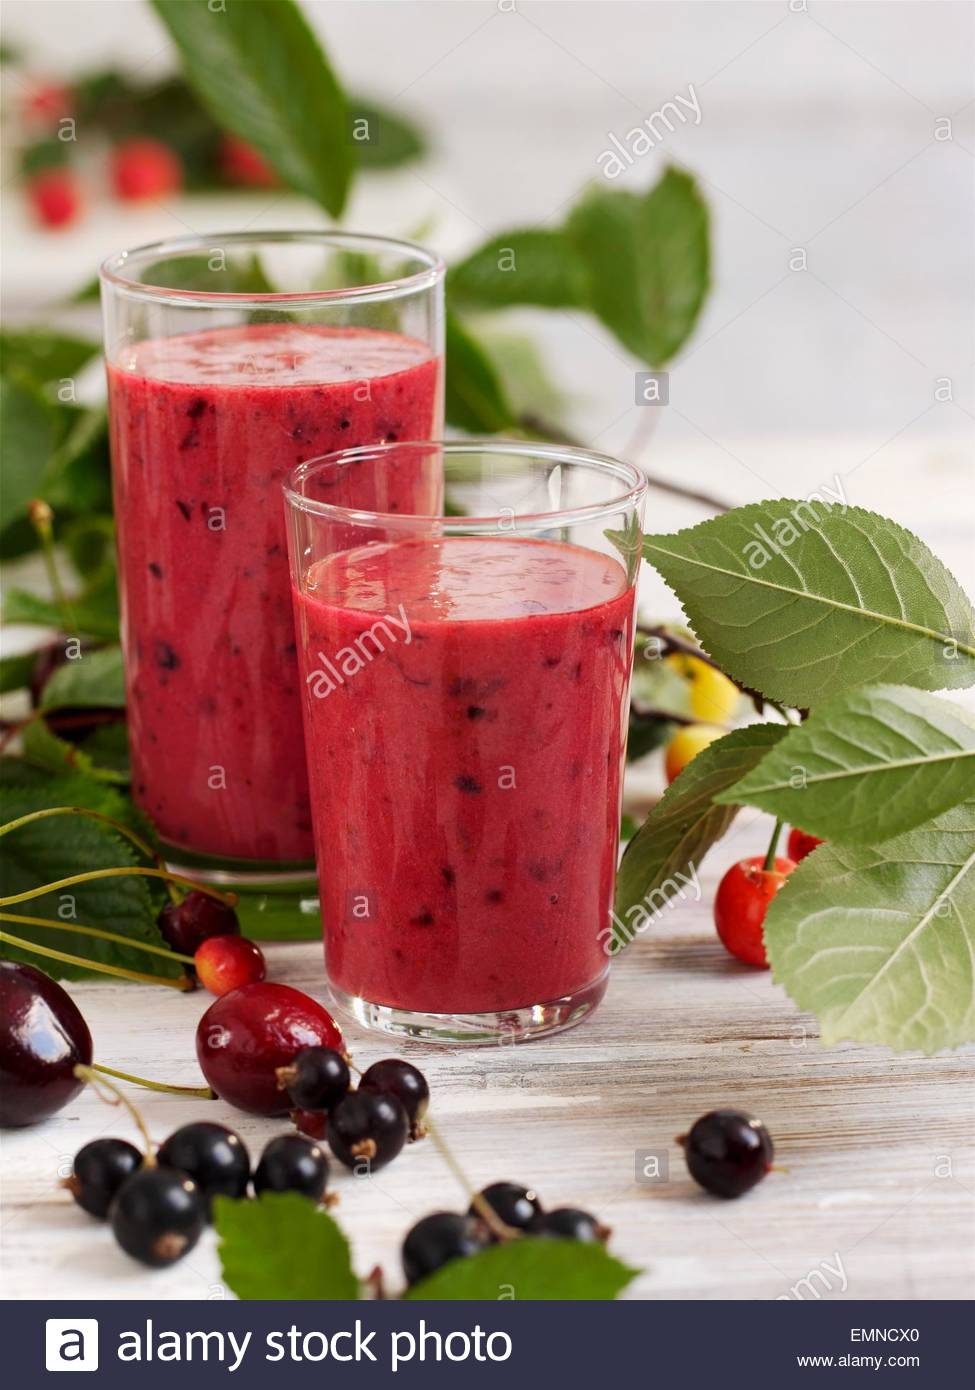 Berry and cherry smoothie - Stock Image